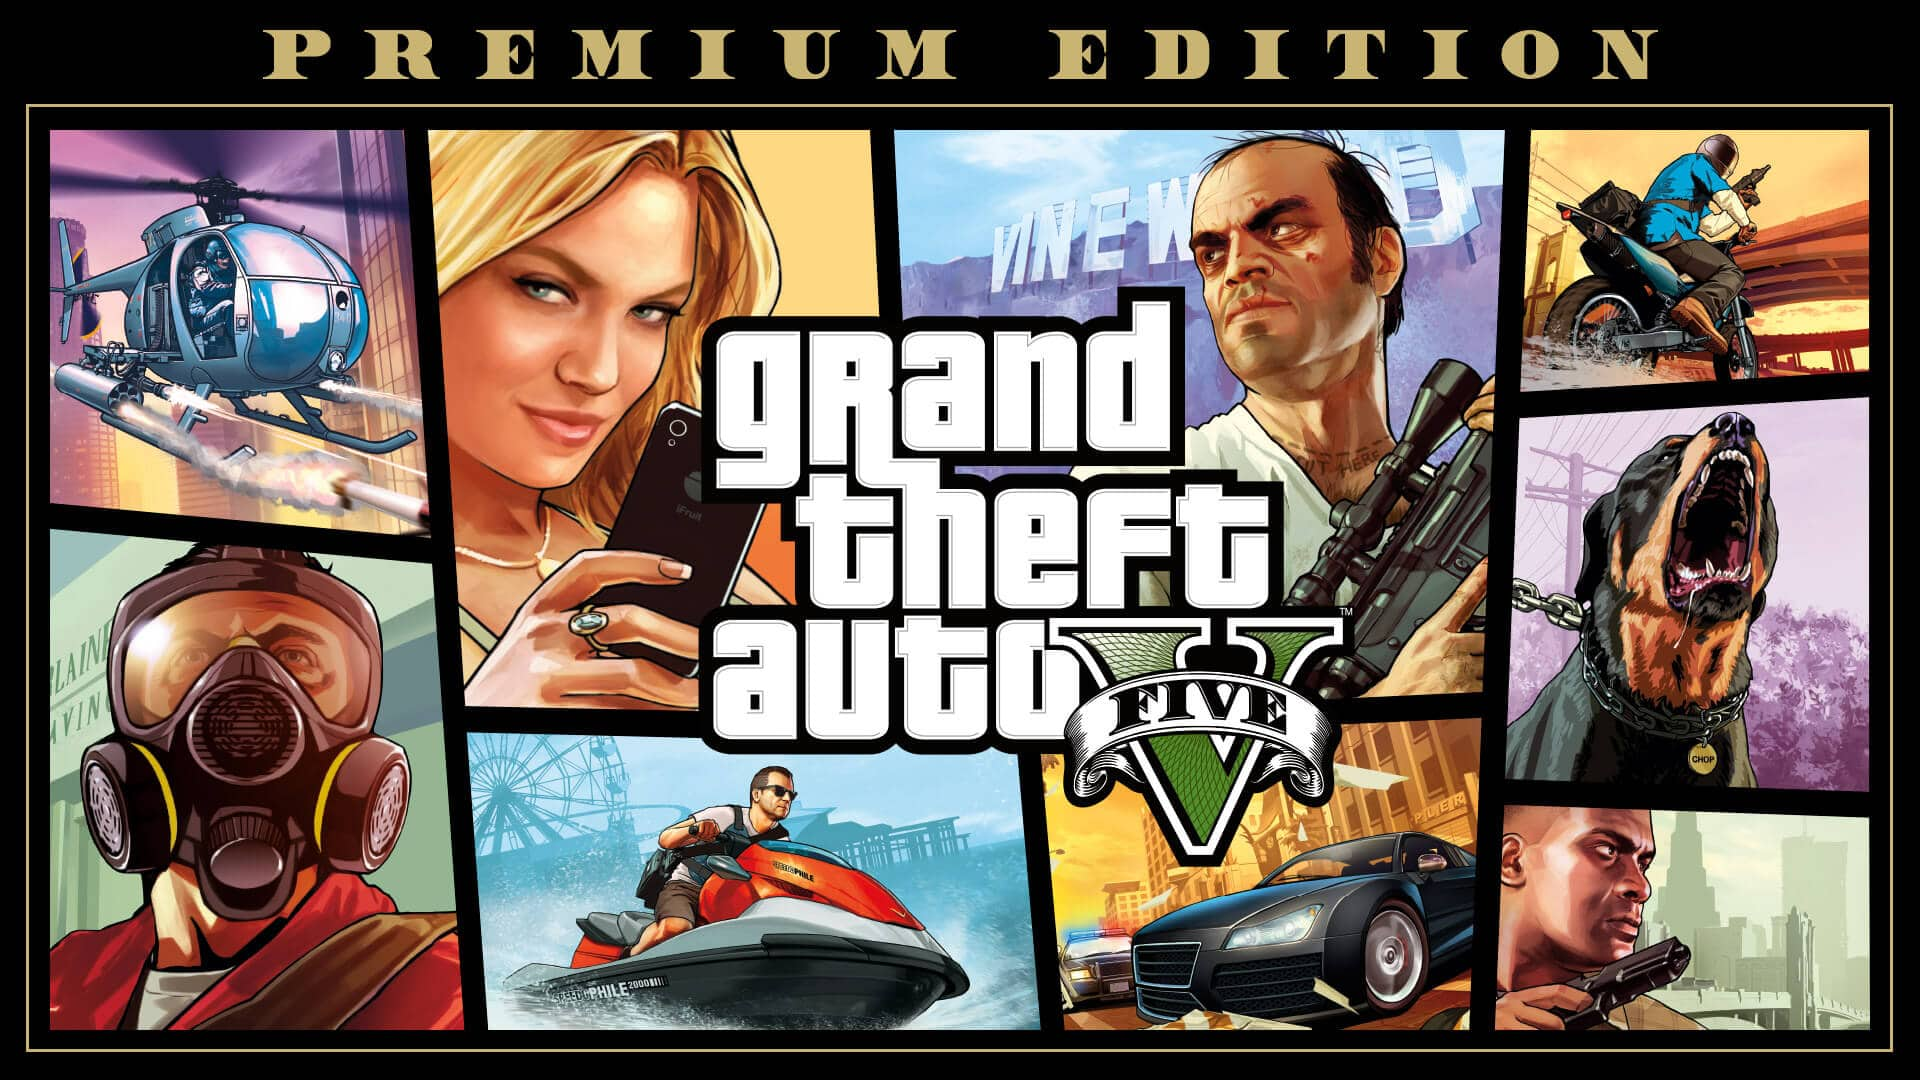 Grand Theft Auto V: Premium Edition PC verison $6.49+tax after coupon